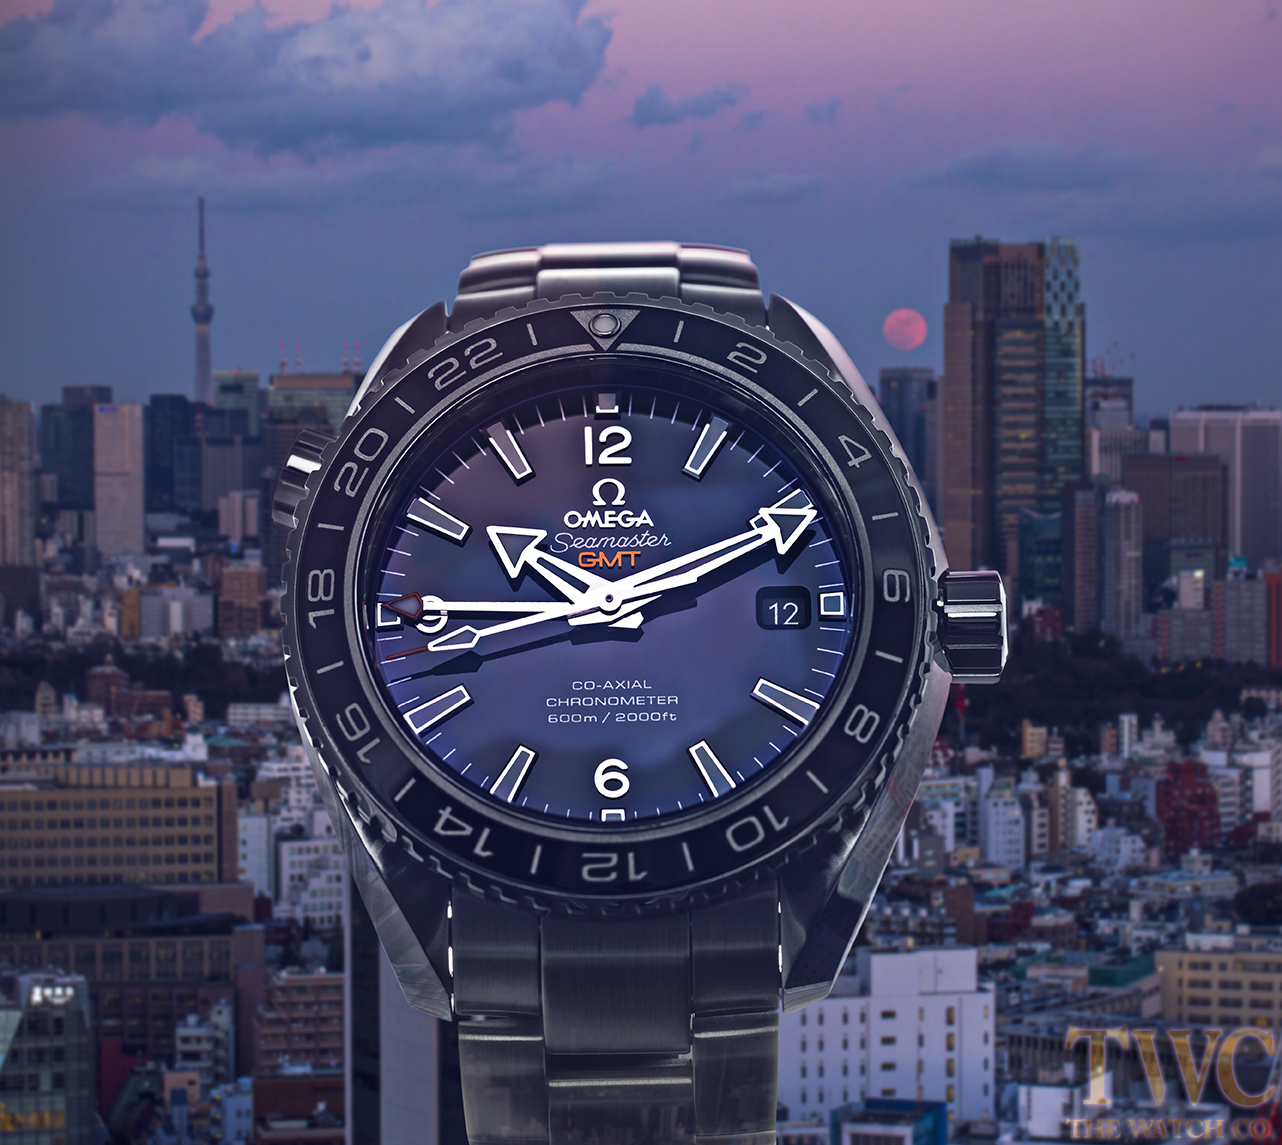 Watch Styles for Men – Six Watch Styles Every Men Should Know